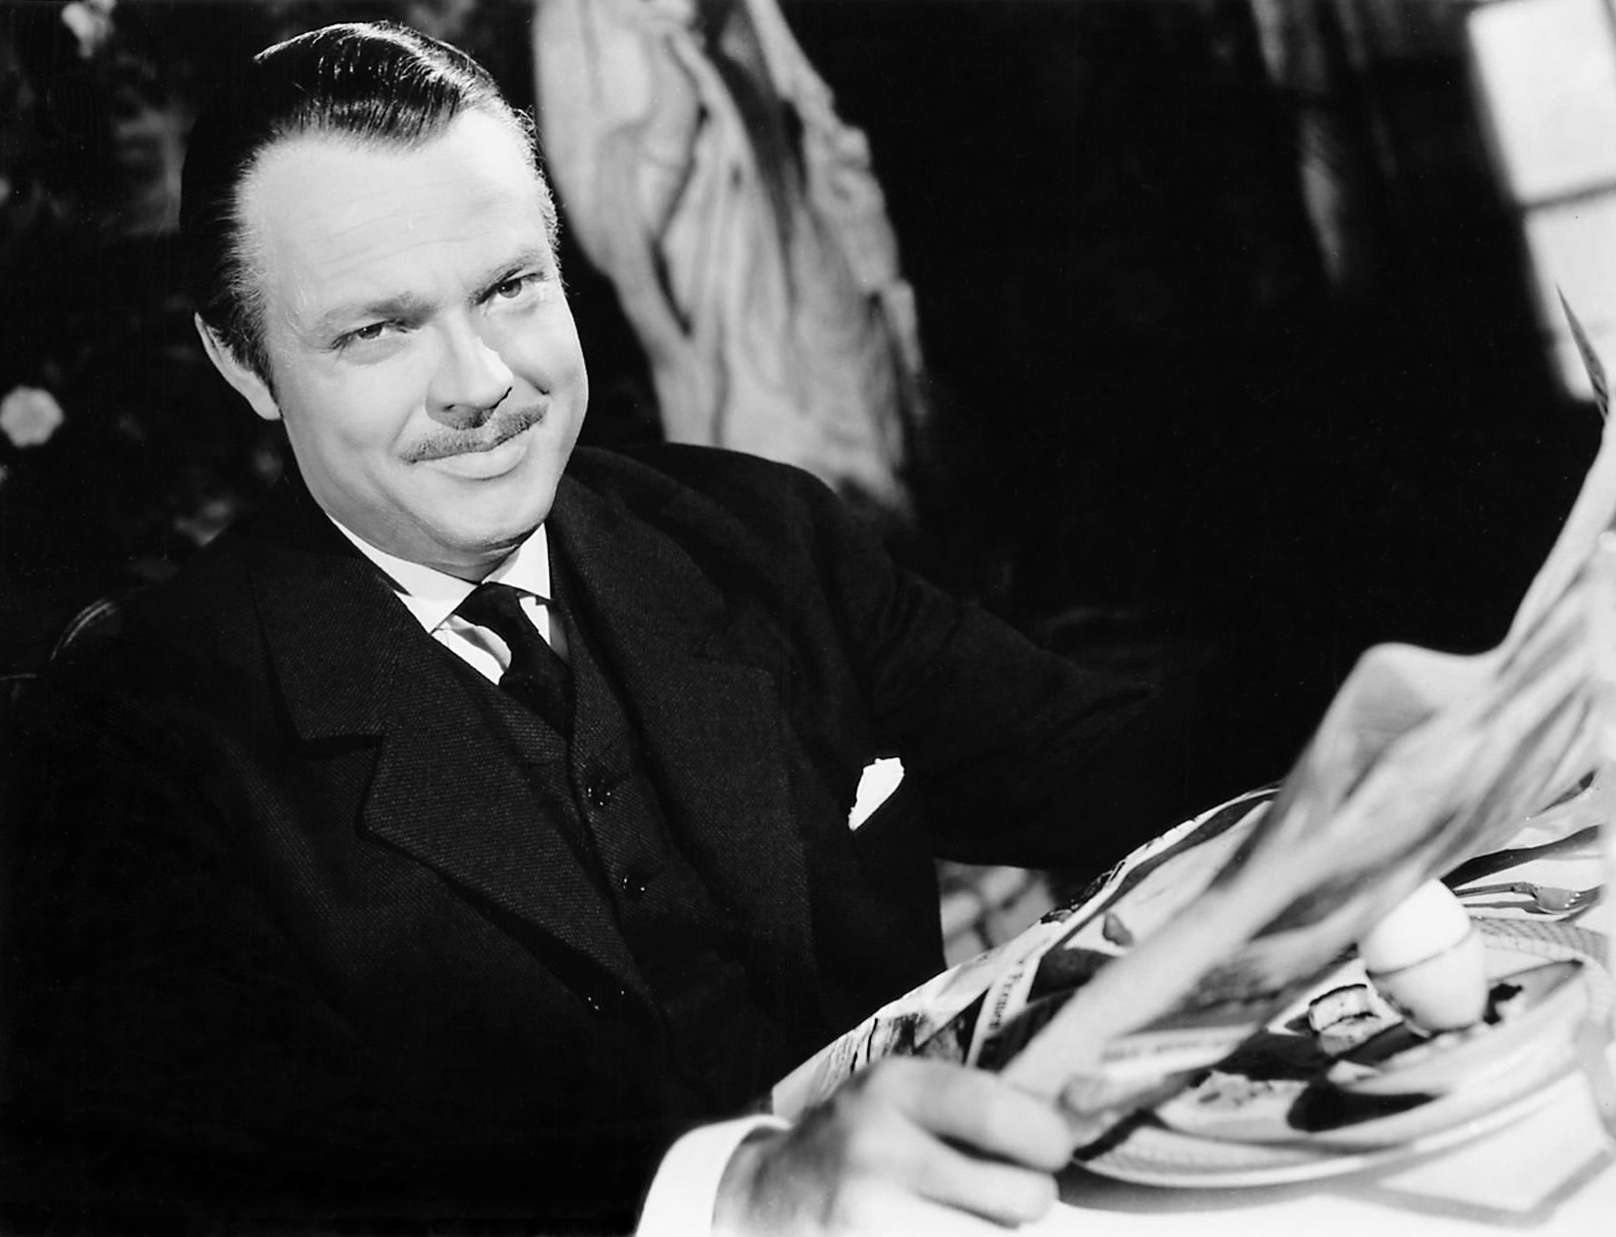 an analysis of the film citizen kane by orson wells The story, along with the revolutionary cinematography, made it a movie years  ahead of it's time where orson welles, charlie kane, takes.